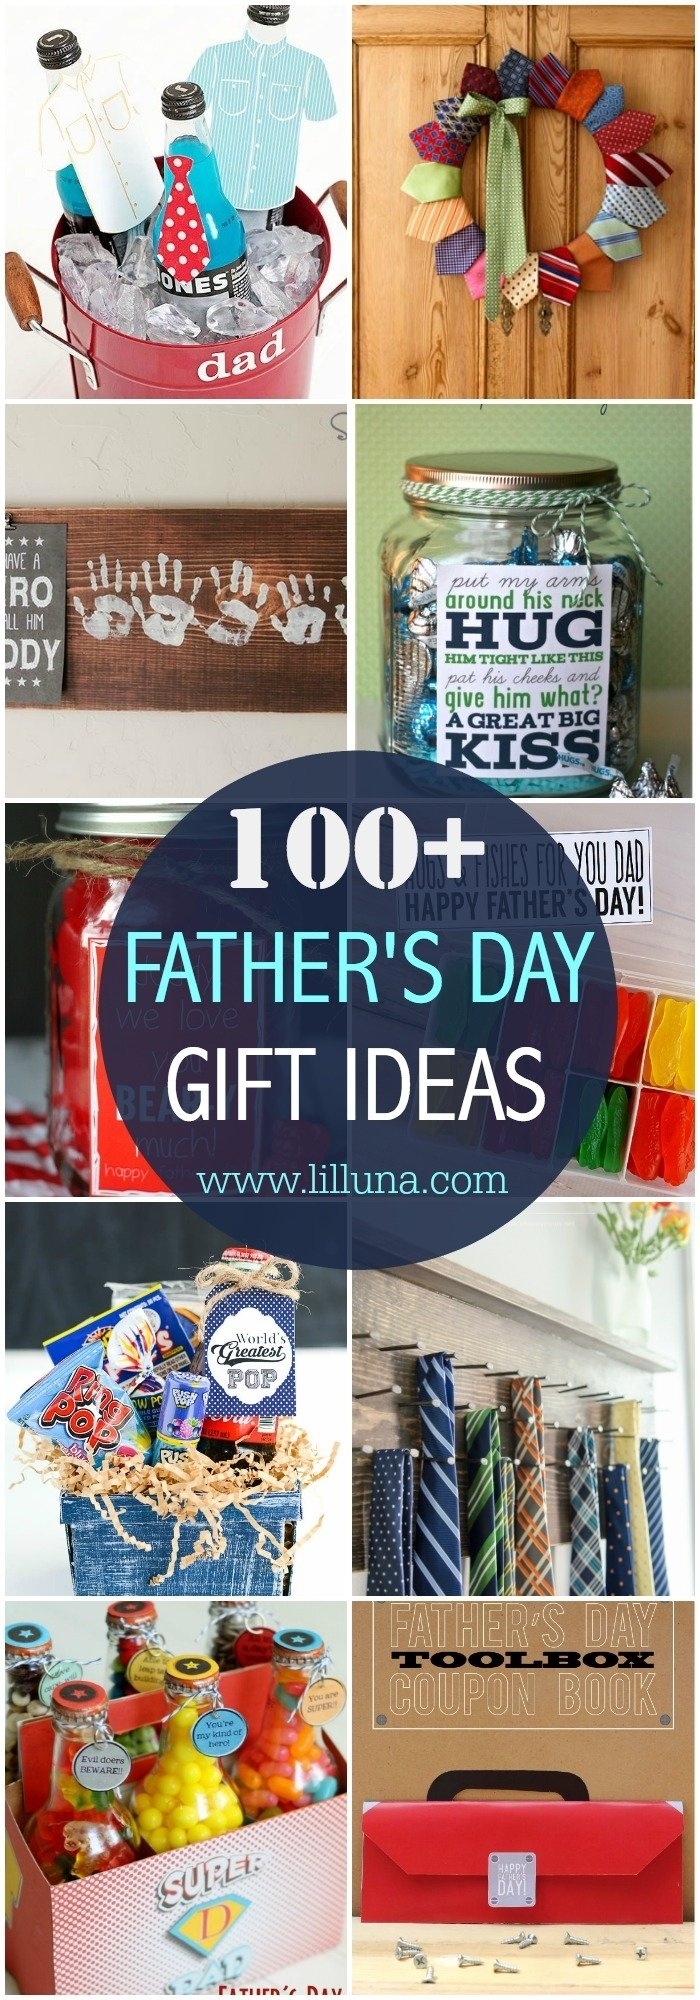 10 Trendy Cheap Gift Ideas For Dad fathers day gift ideas 2021